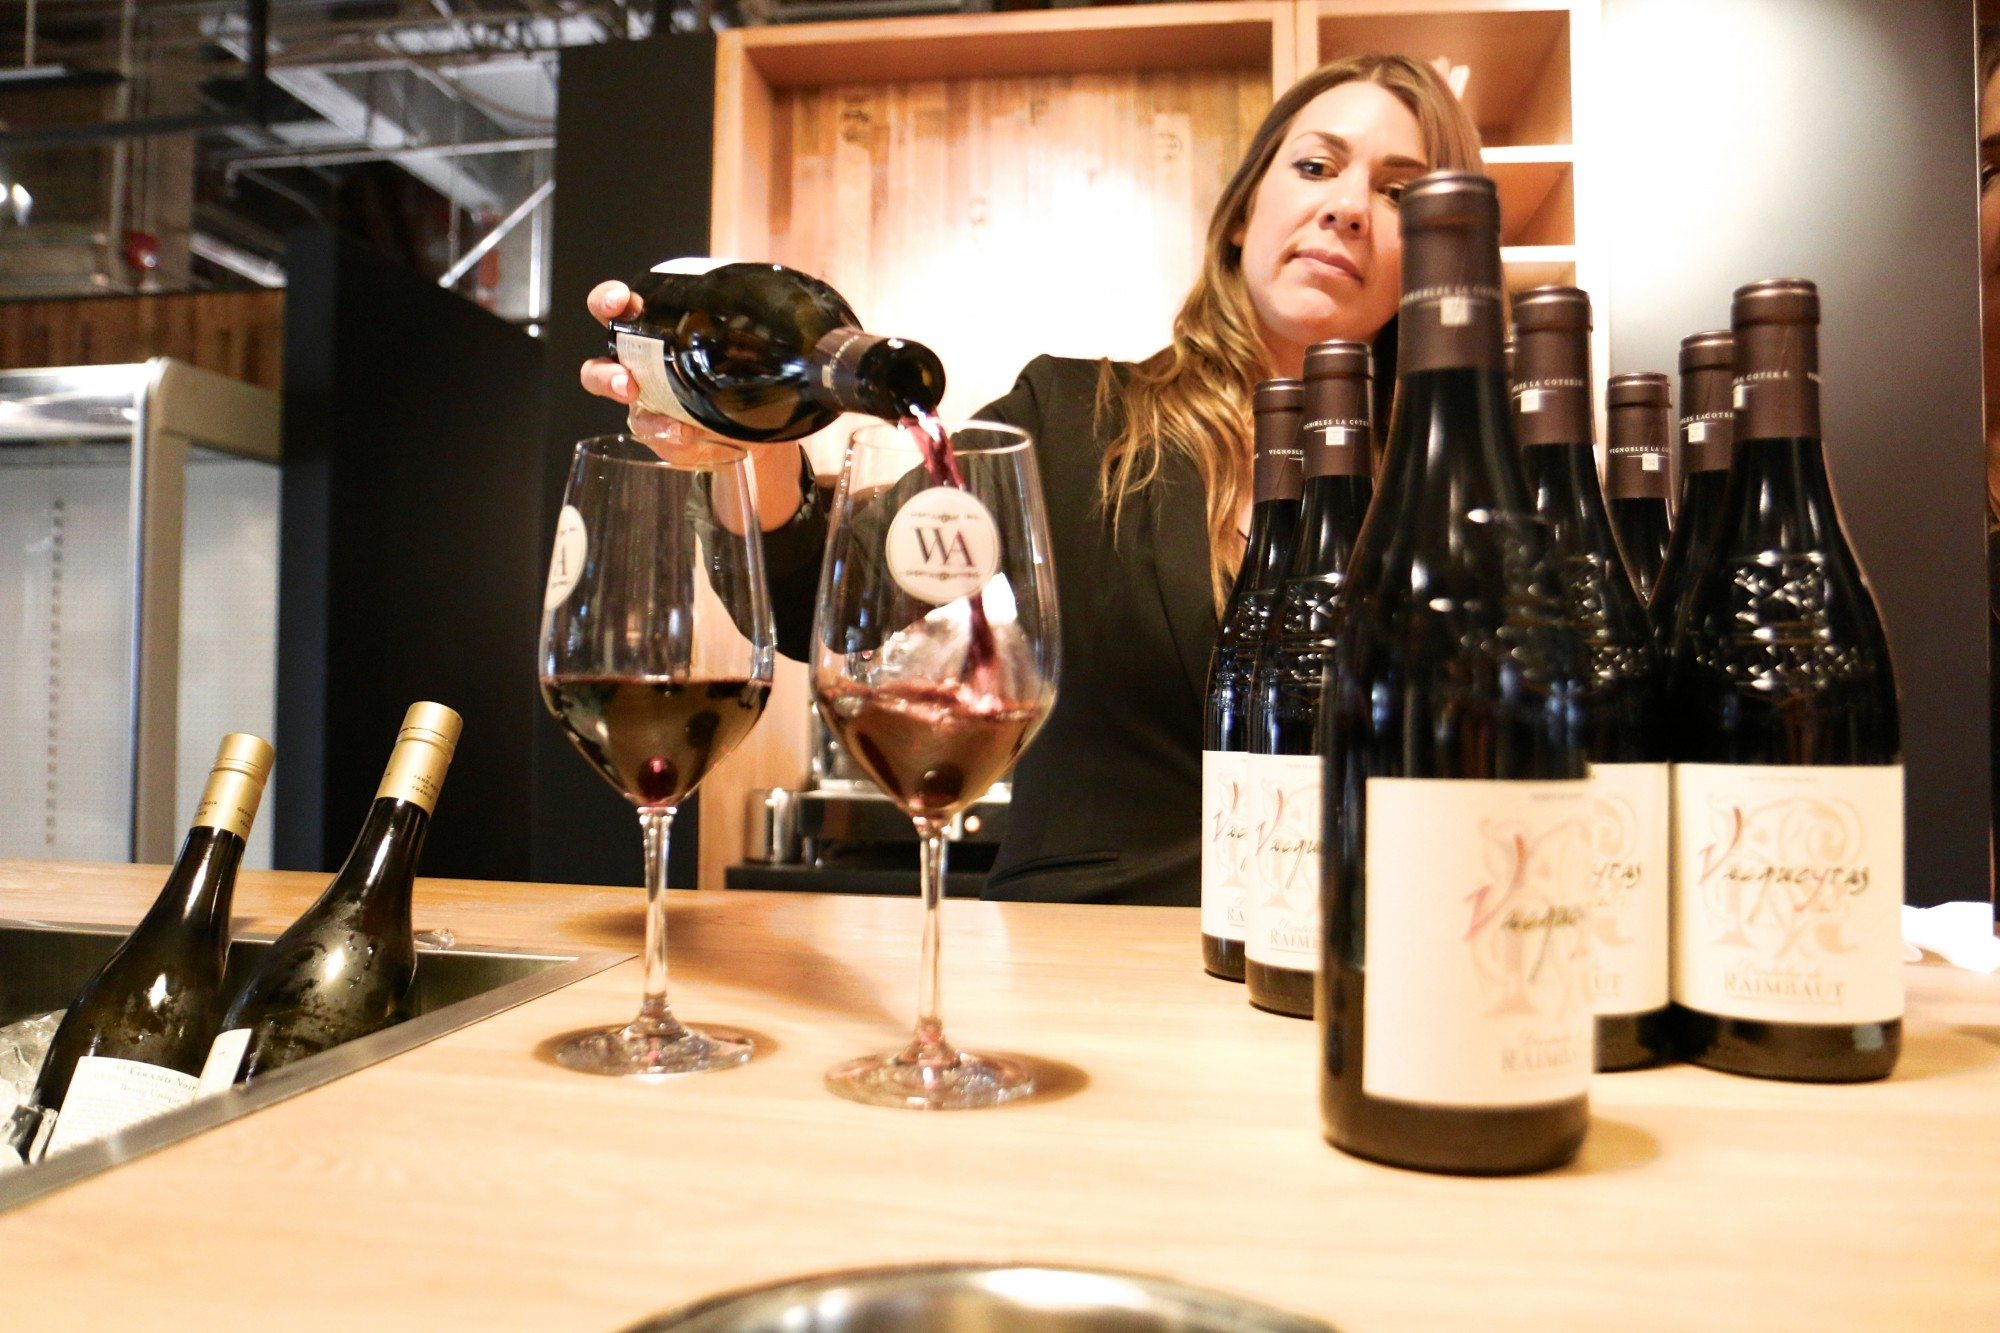 toronto-restaurants-clubs-the-private-wine-academy-financial-district-bar